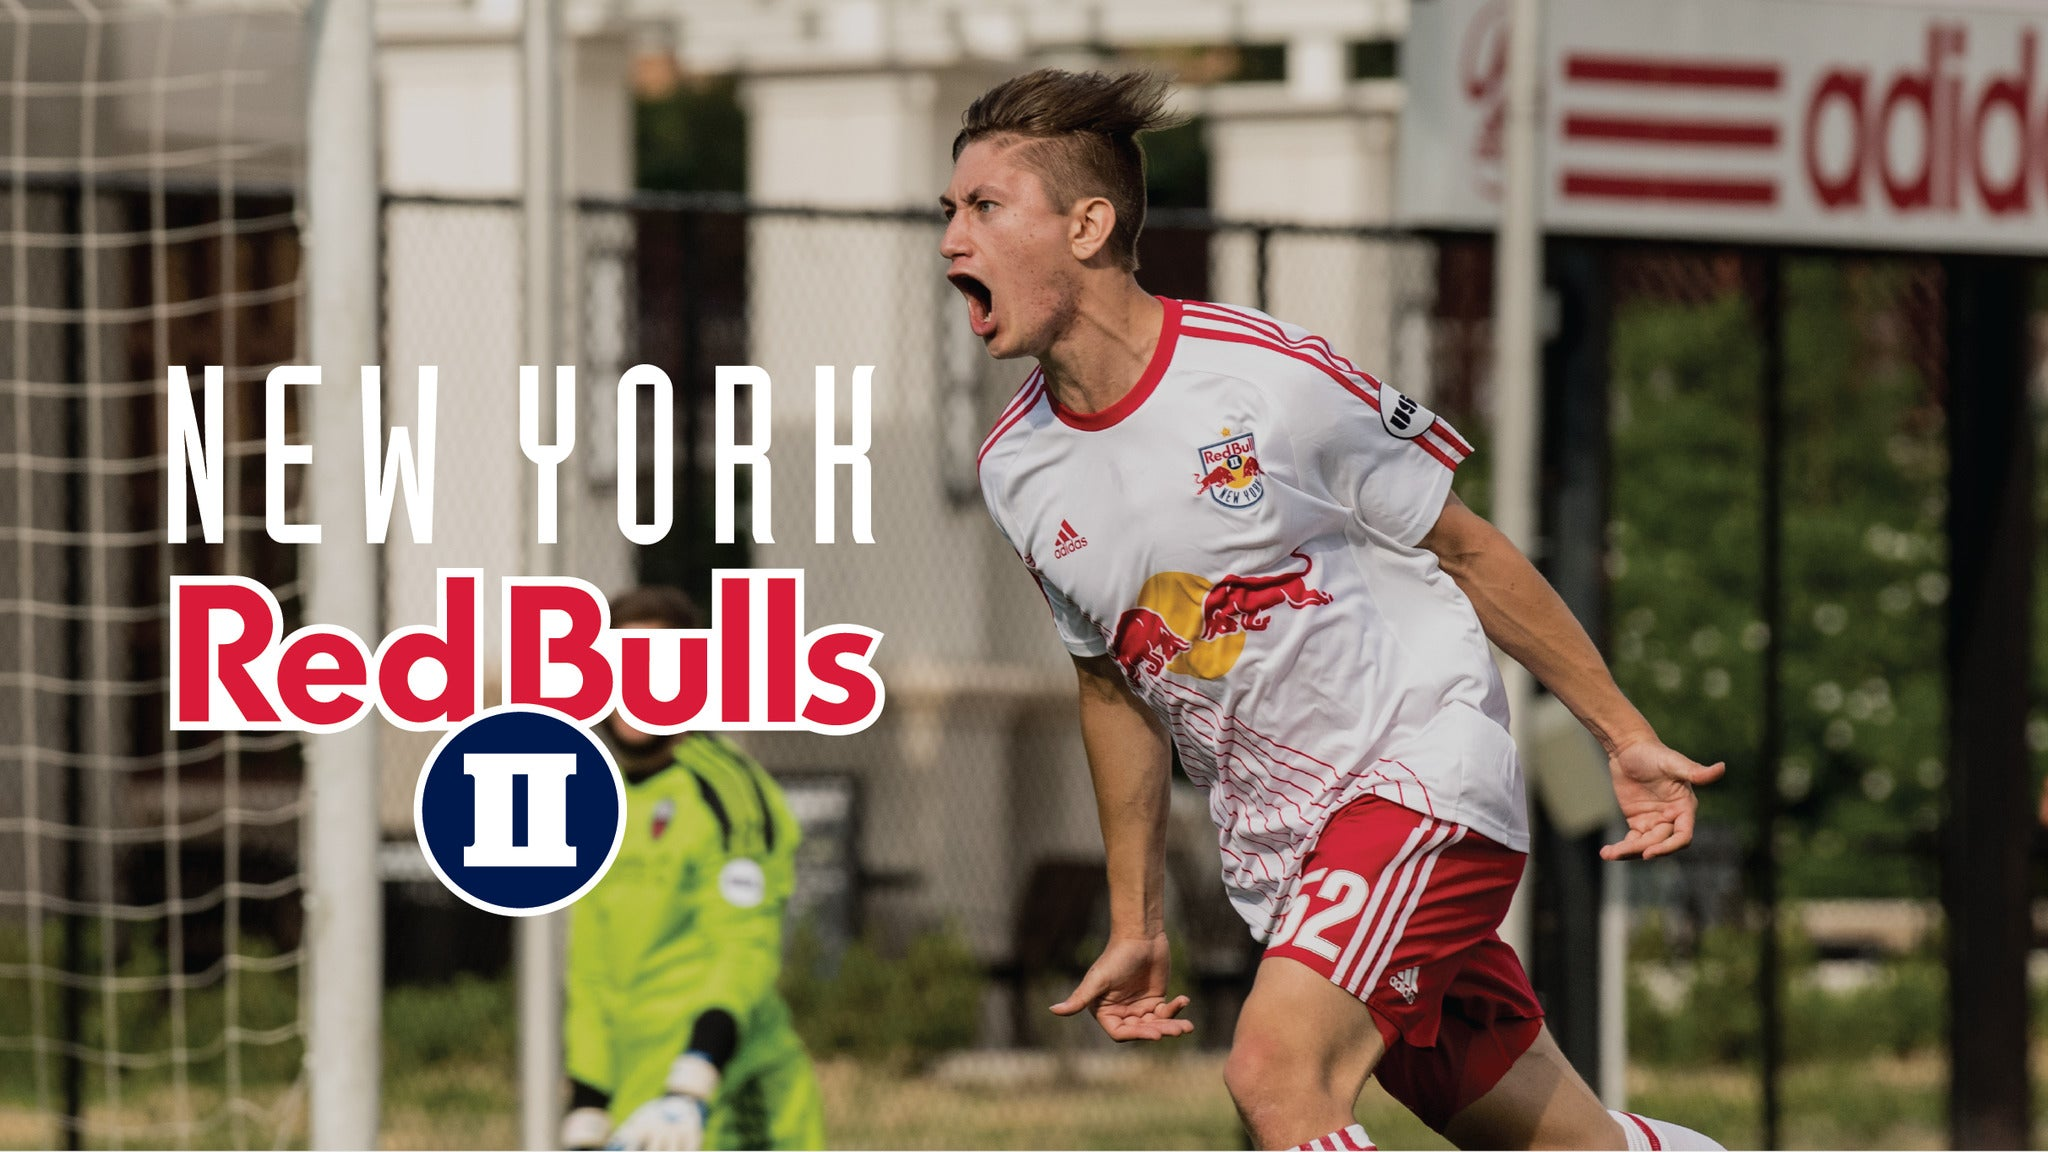 New York Red Bulls II vs. Penn FC